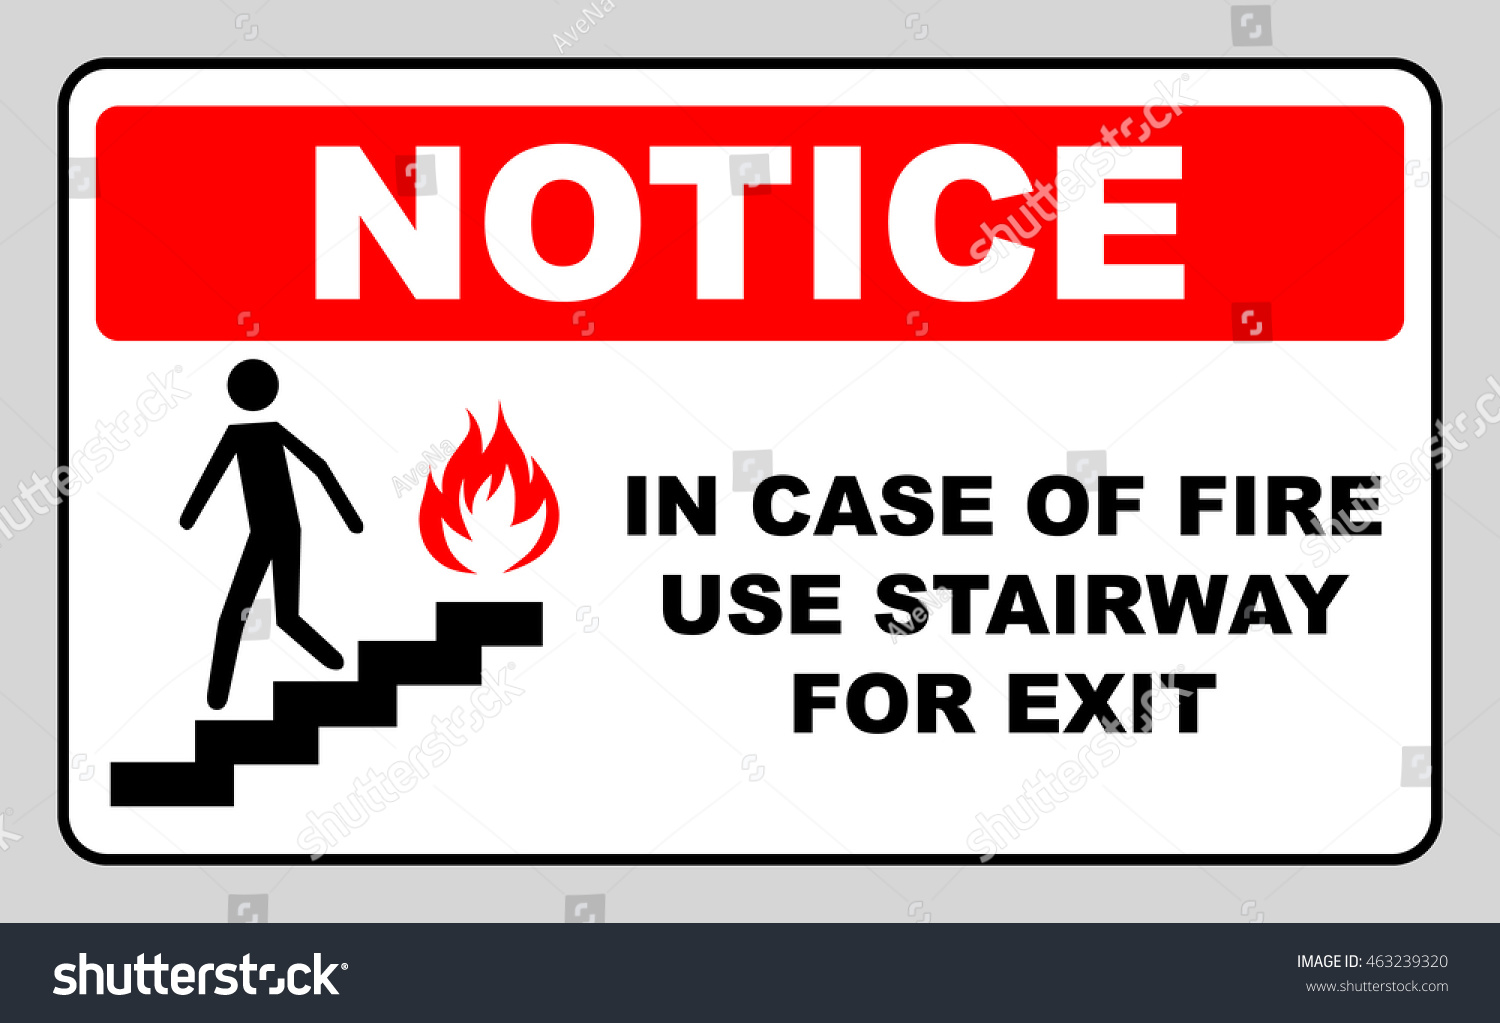 Case fire use stairway exit sign stock vector 463239320 shutterstock in case of fire use stairway for exit sign vector symbol buycottarizona Images